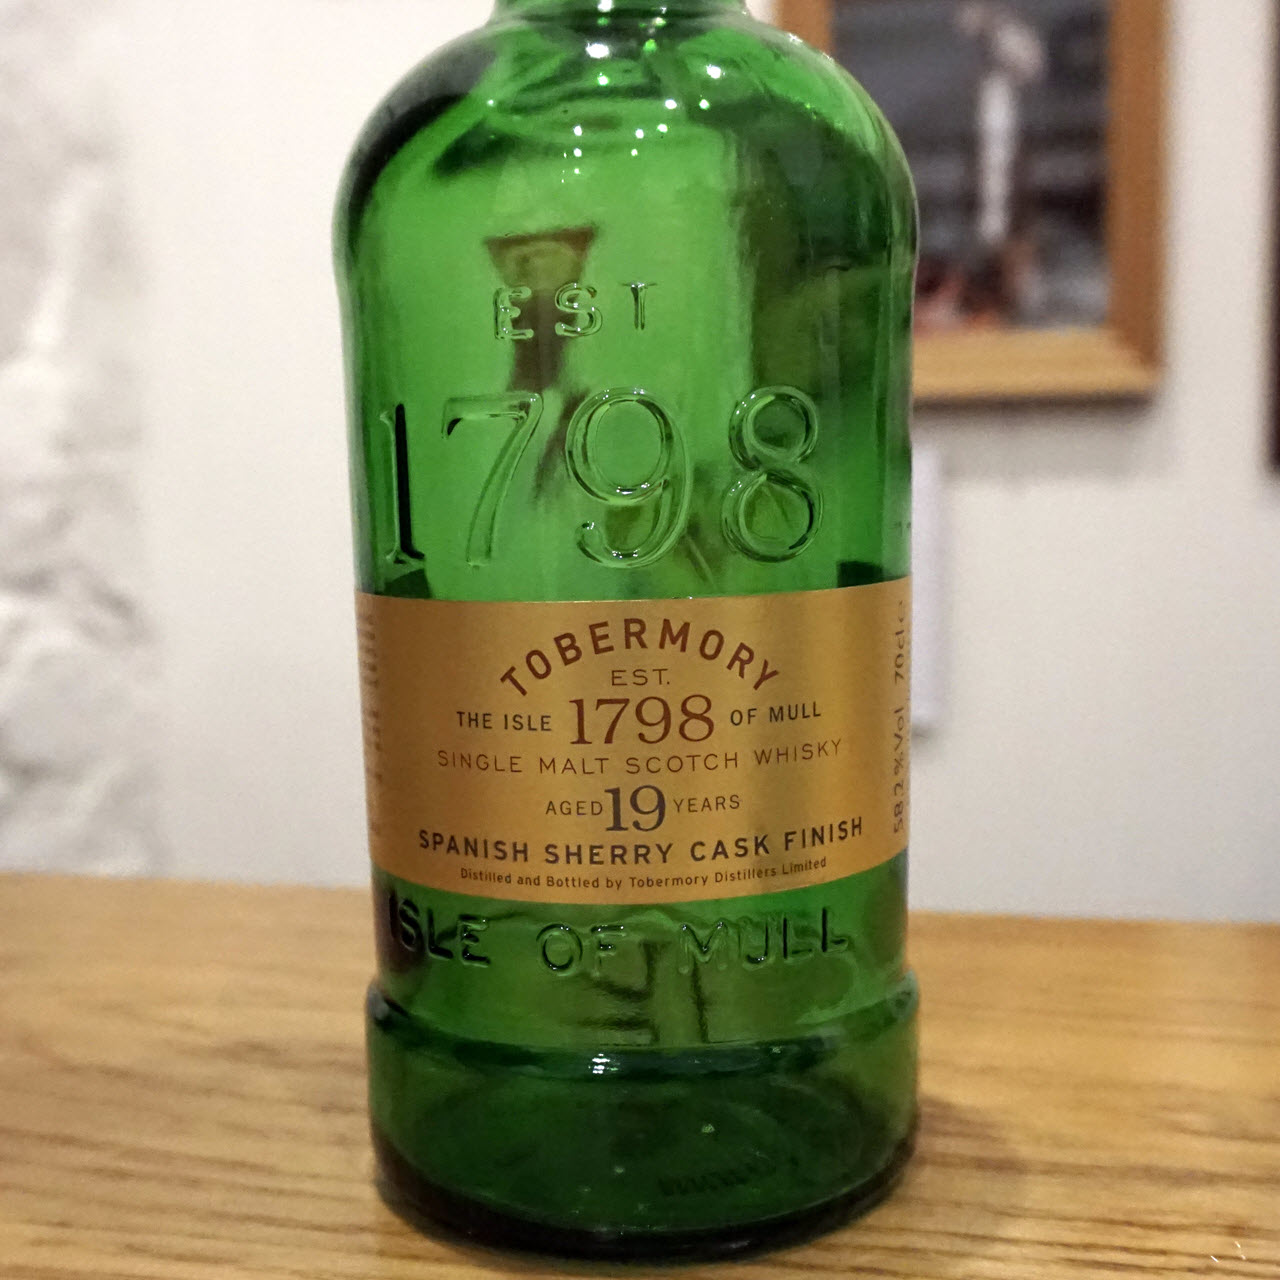 Tobermory 19 YO Spanish Sherry Cask Finish – Distillery Exclusive